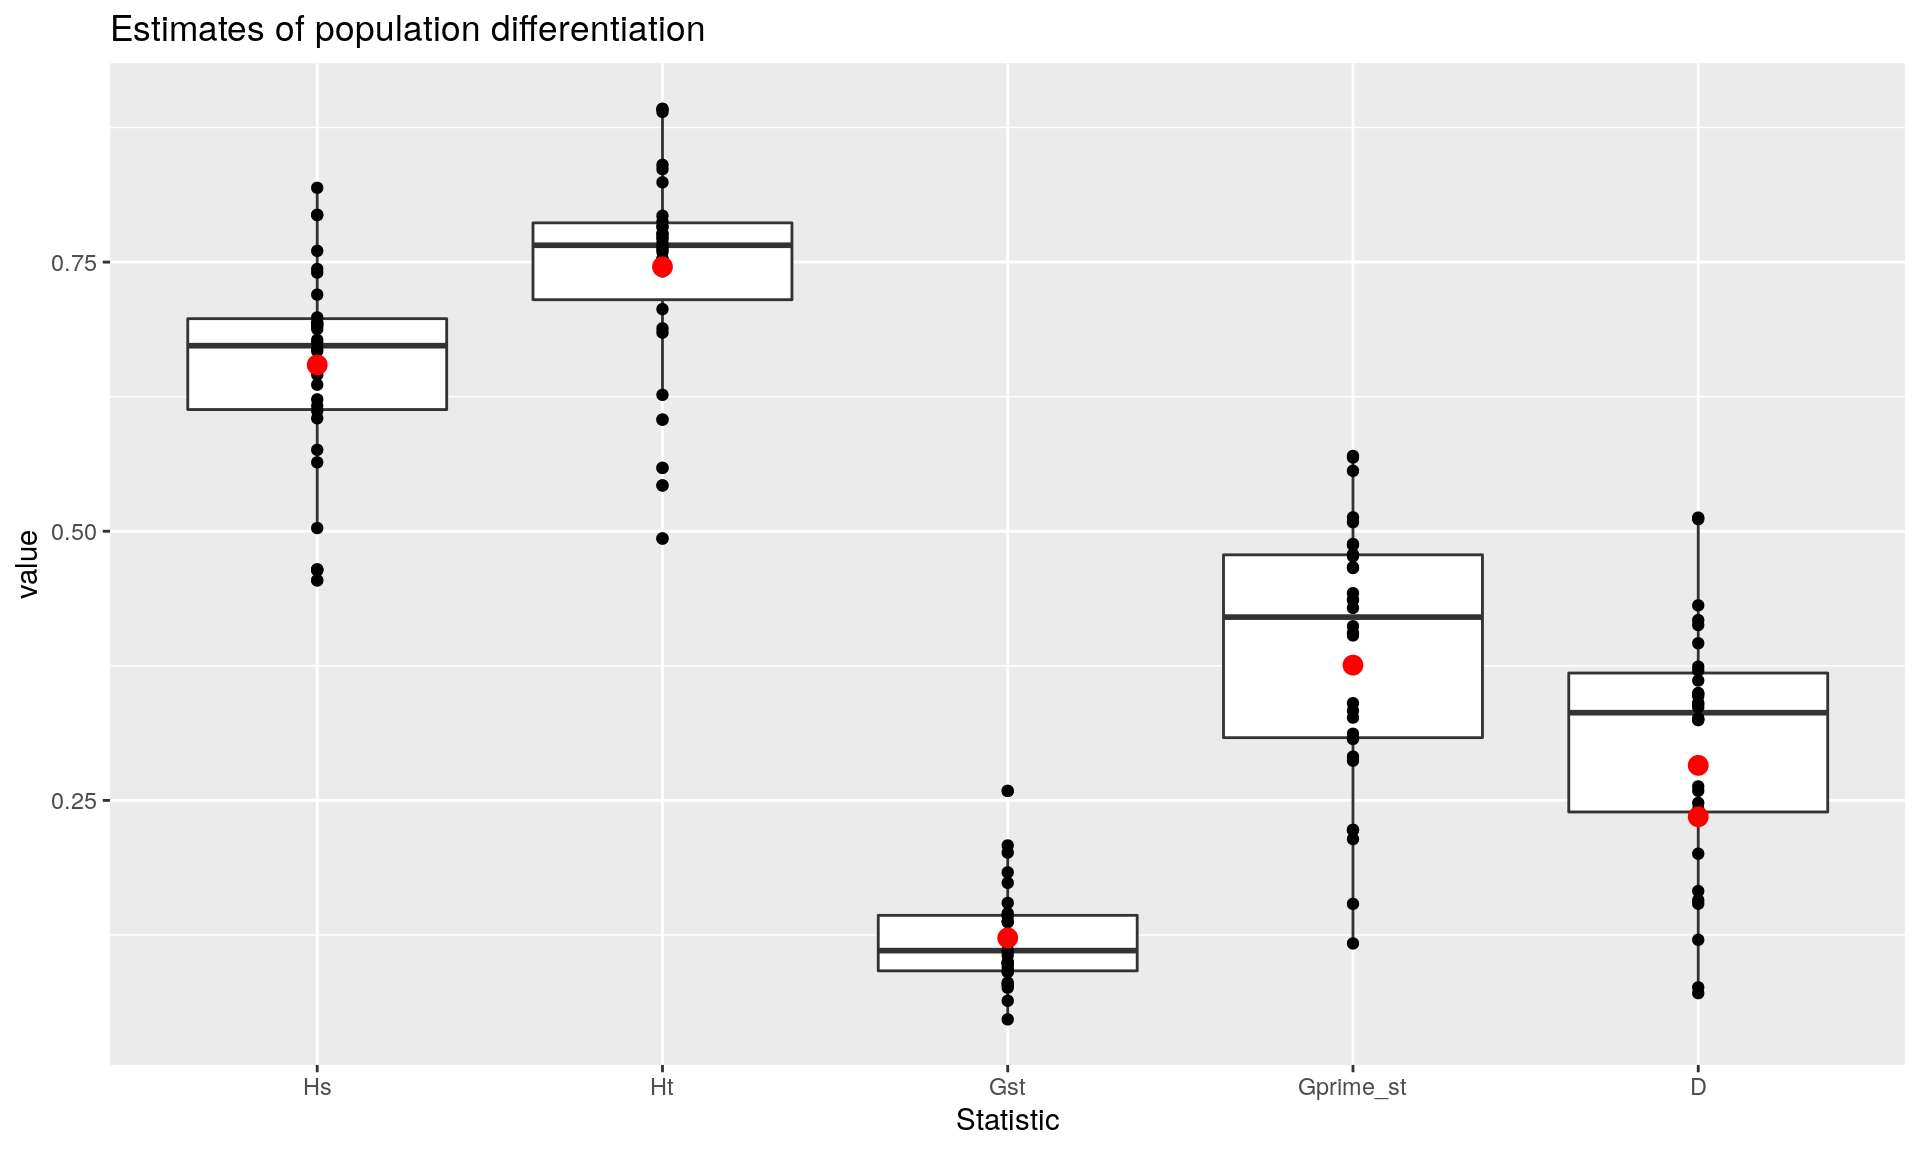 Calculating genetic differentiation from SSR data